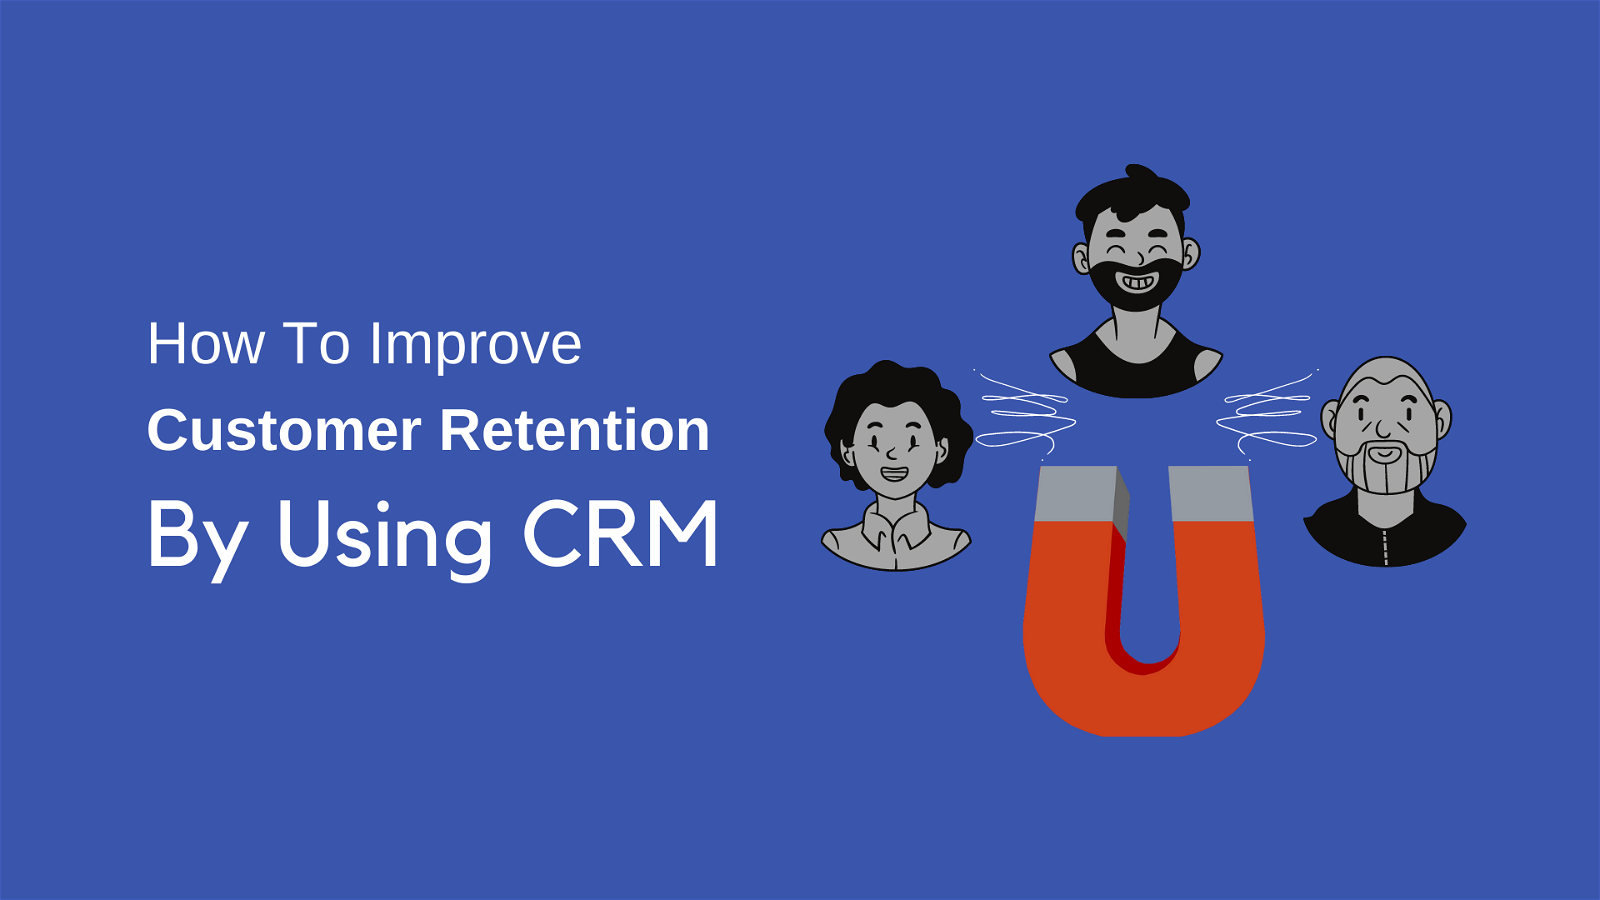 How To Improve Customer Retention By Using CRM: Grow Your Business